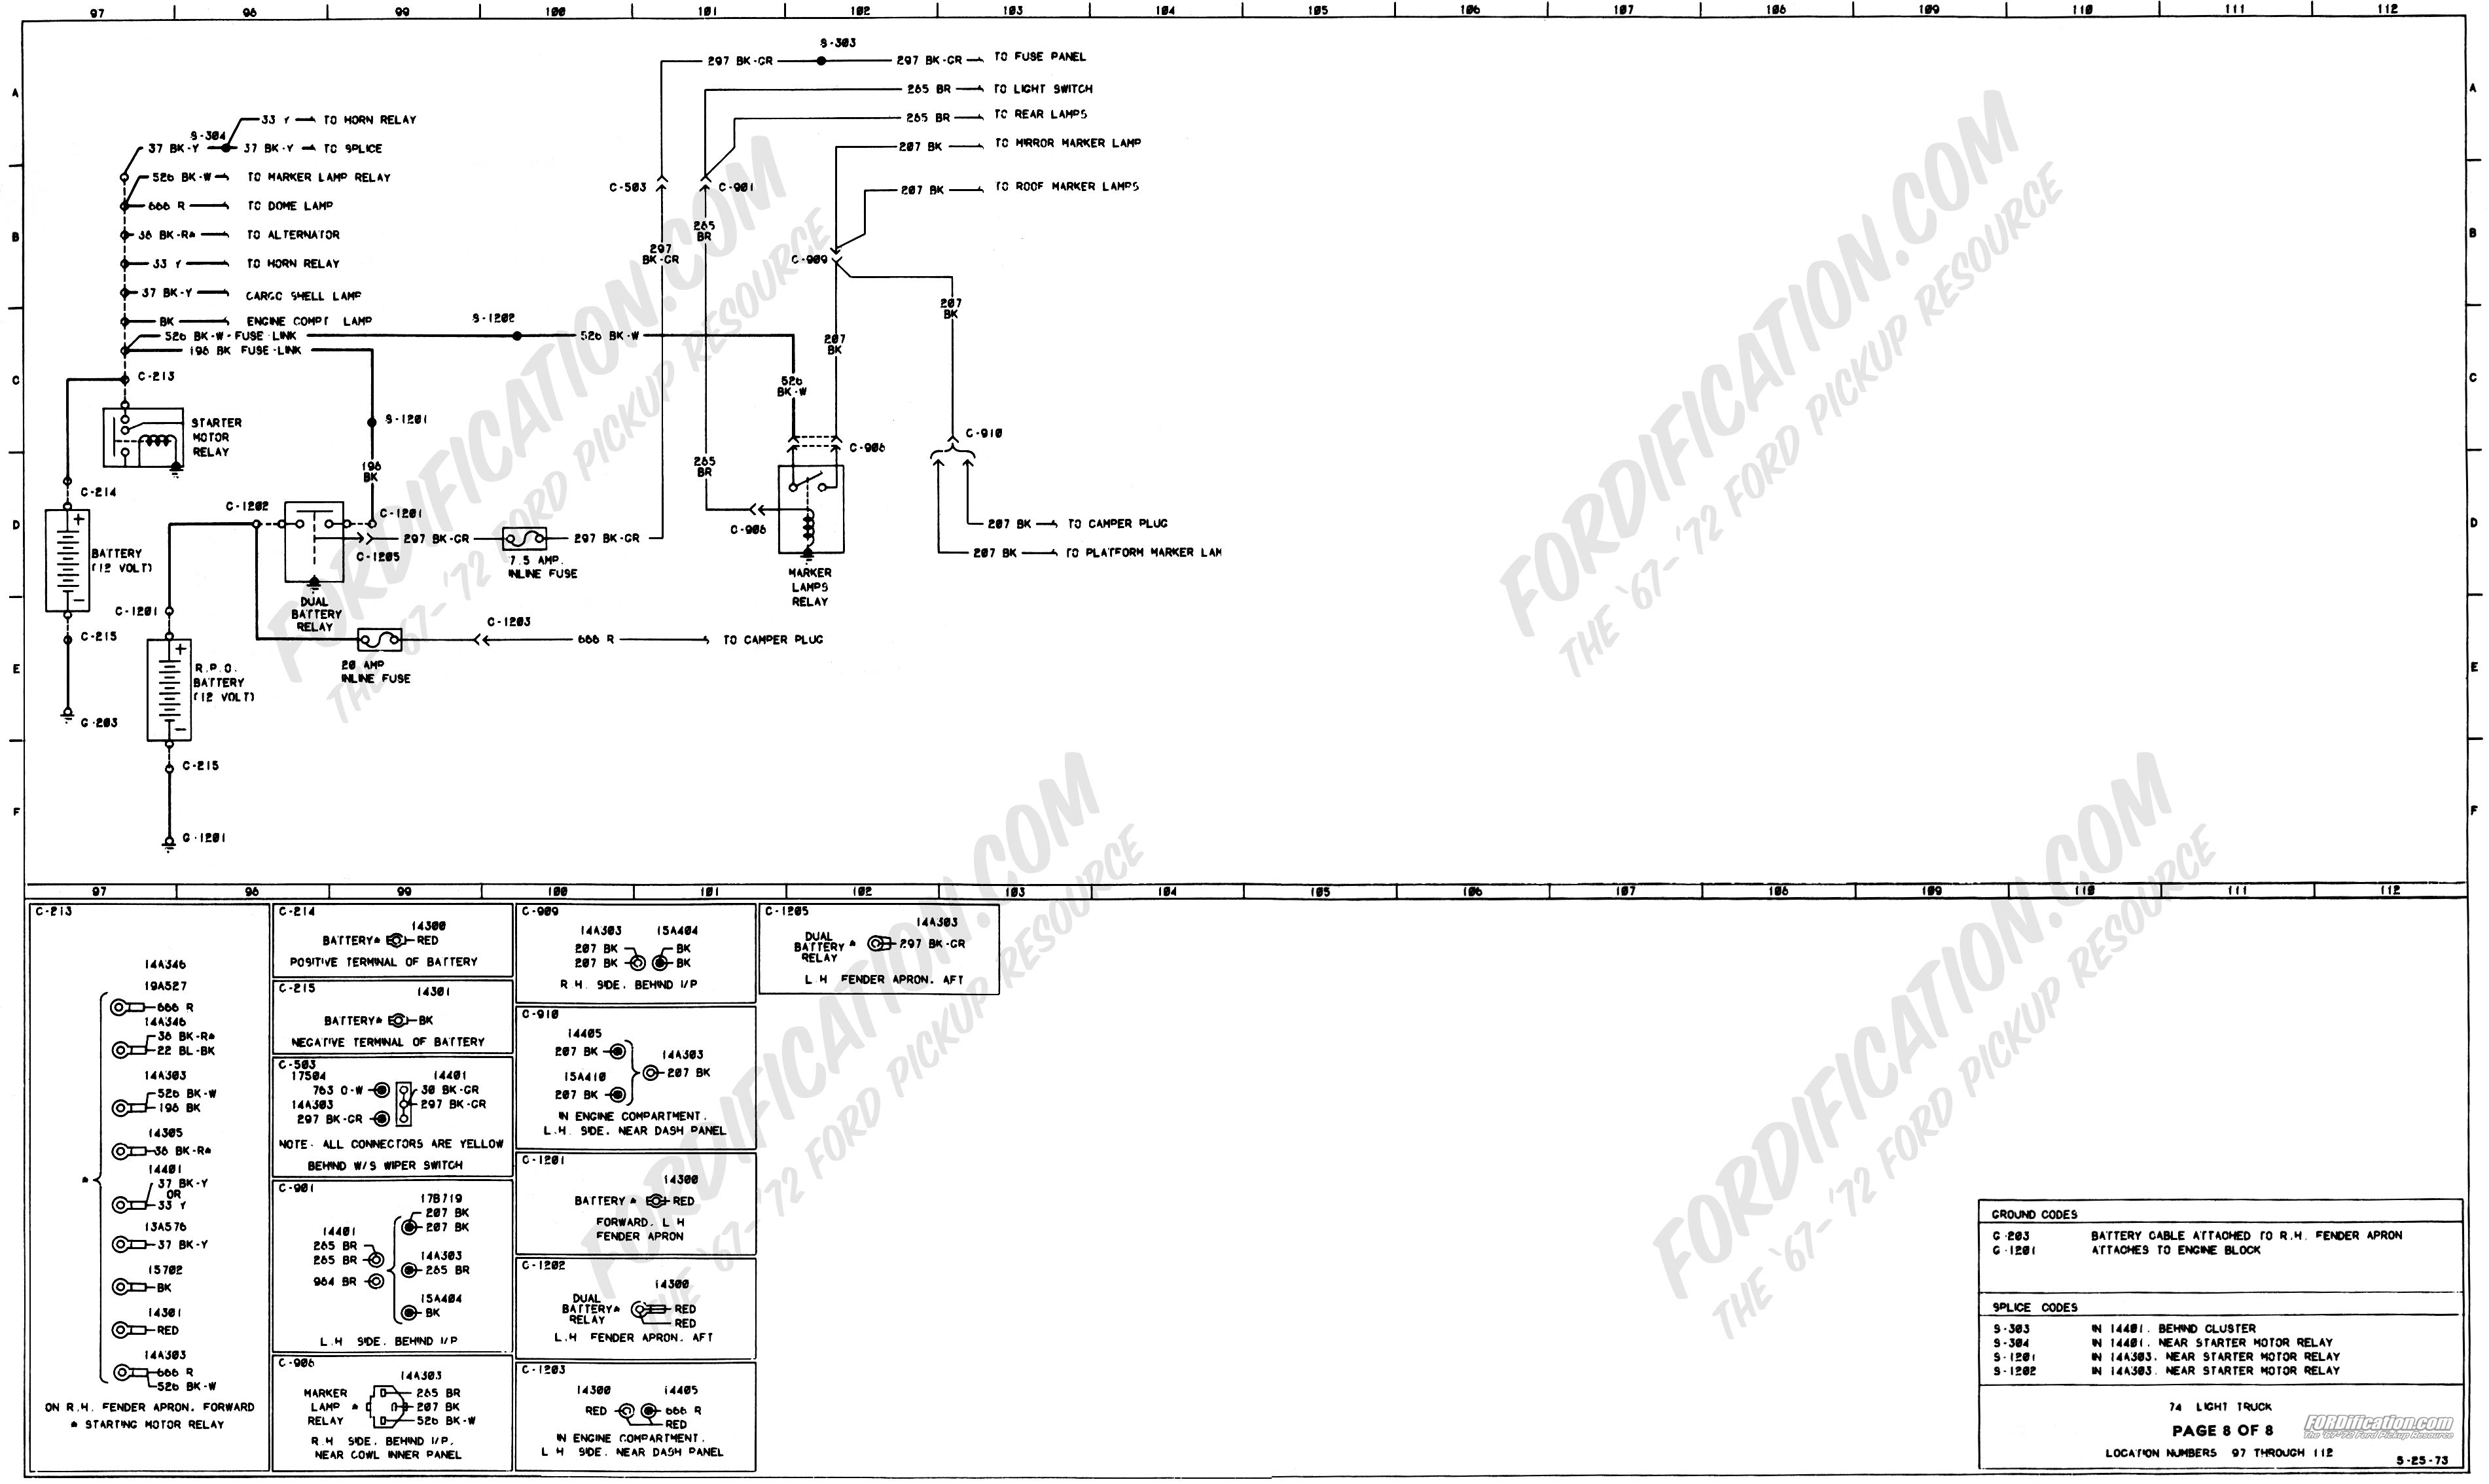 Incredible 1973 1979 Ford Truck Wiring Diagrams Schematics Fordification Net Wiring Cloud Filiciilluminateatxorg